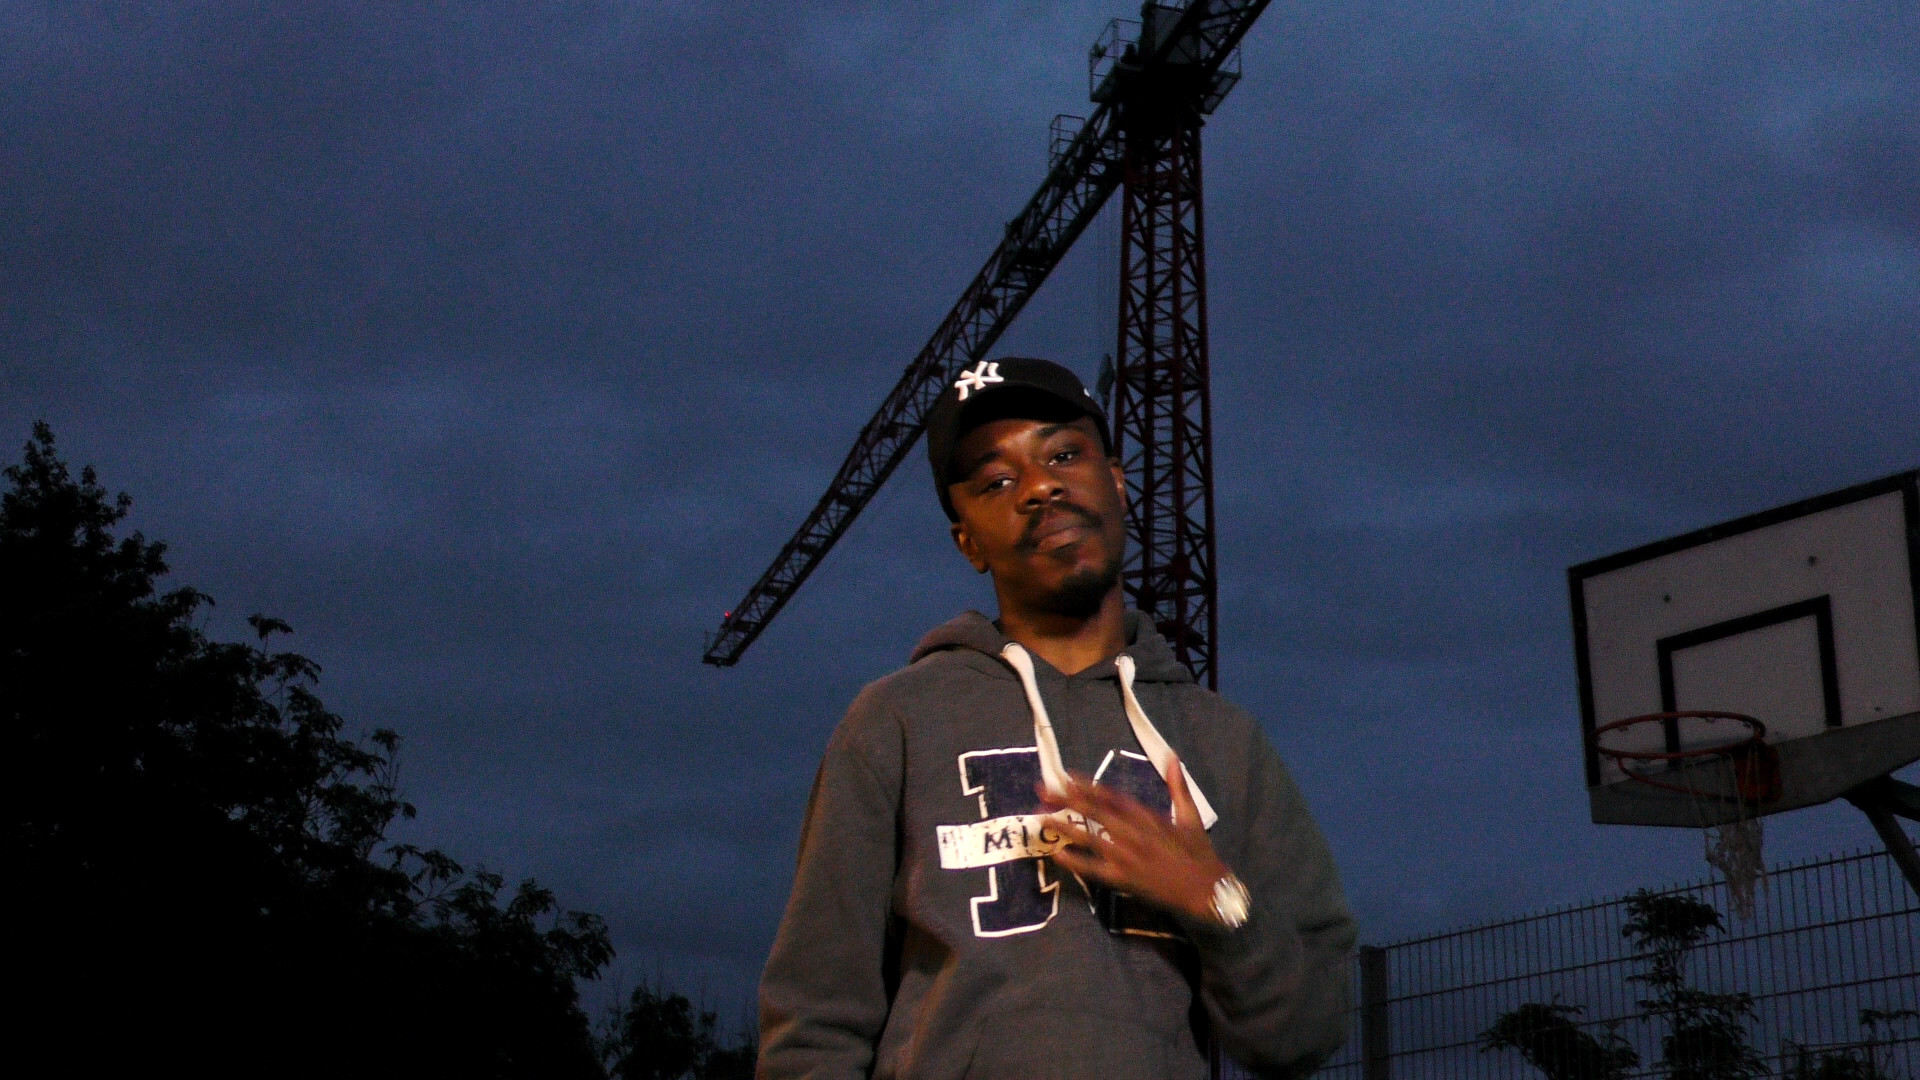 Still from Life Now music video of Jepeto Knockz rapping towards the camera at night on a basketball court